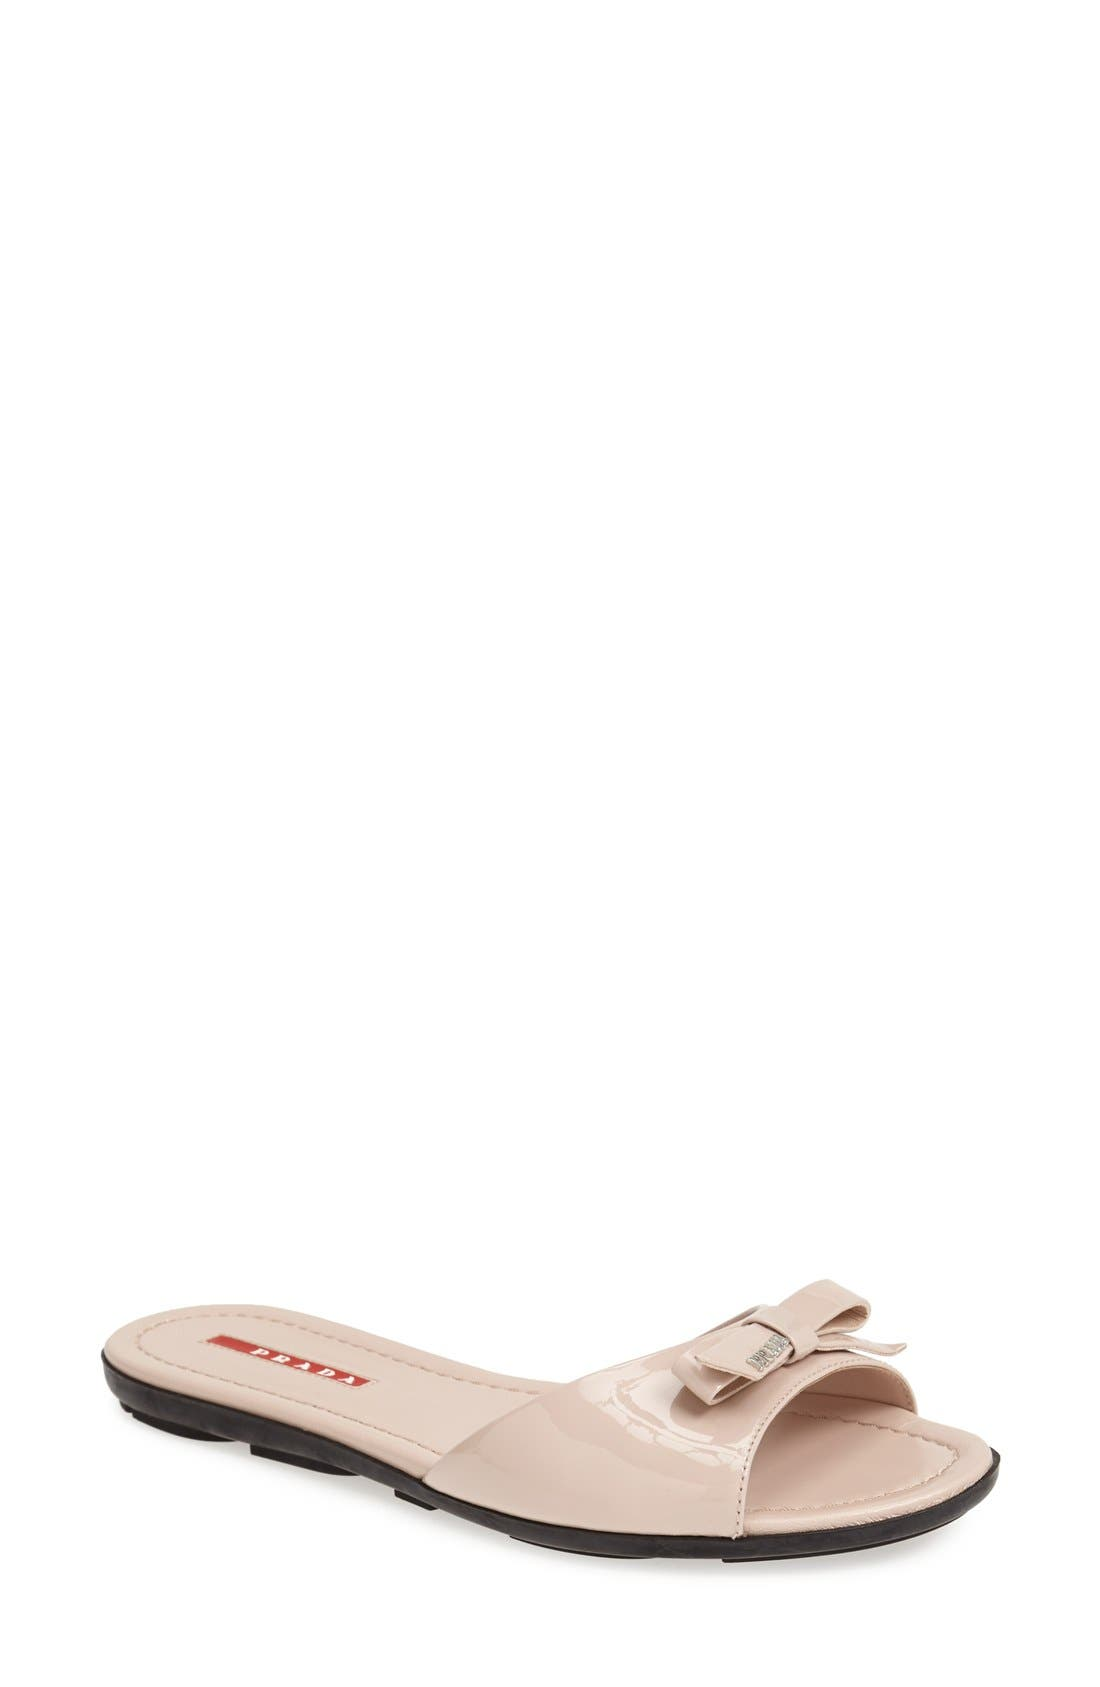 Main Image - Prada Bow Slide Sandal (Women)